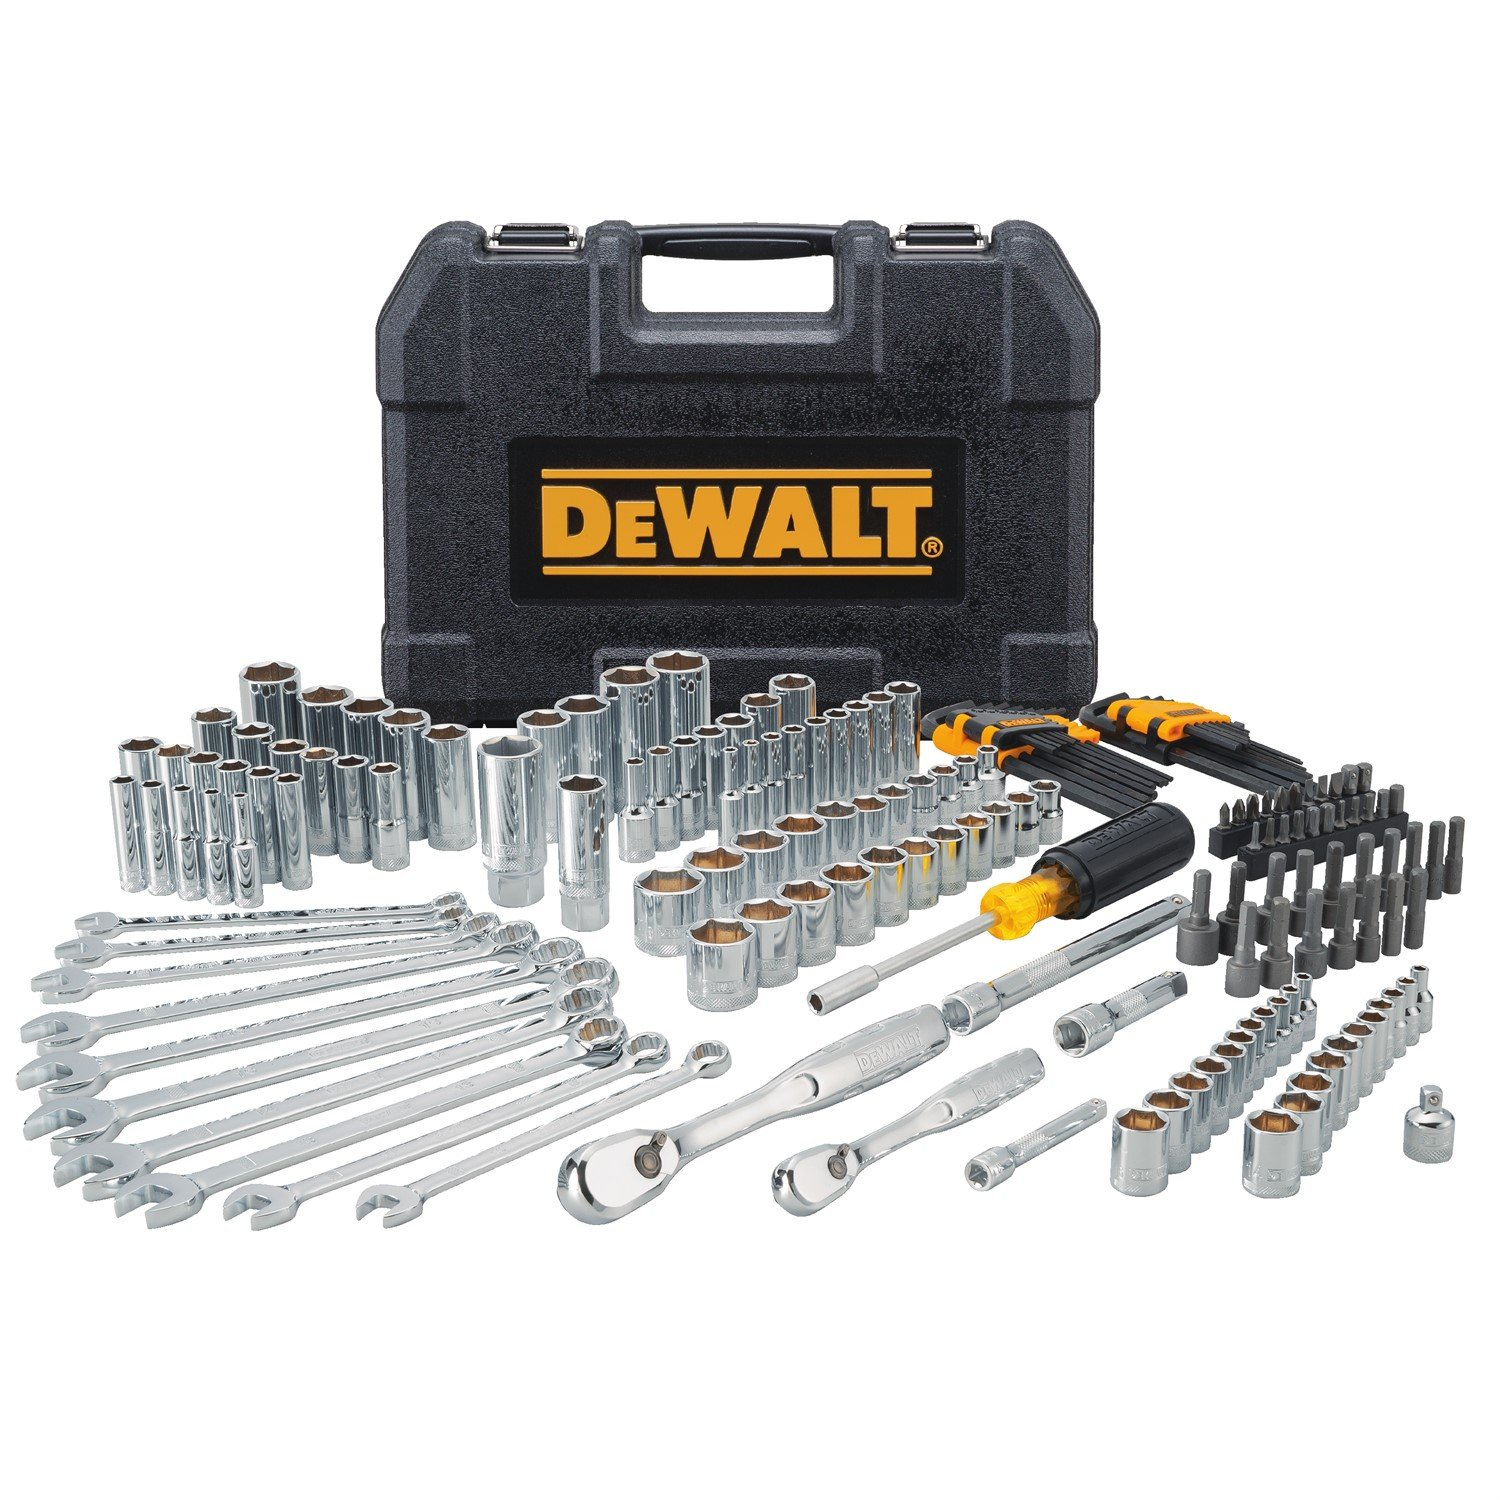 DEWALTDWMT81533 172pc Mechanics Tool Set